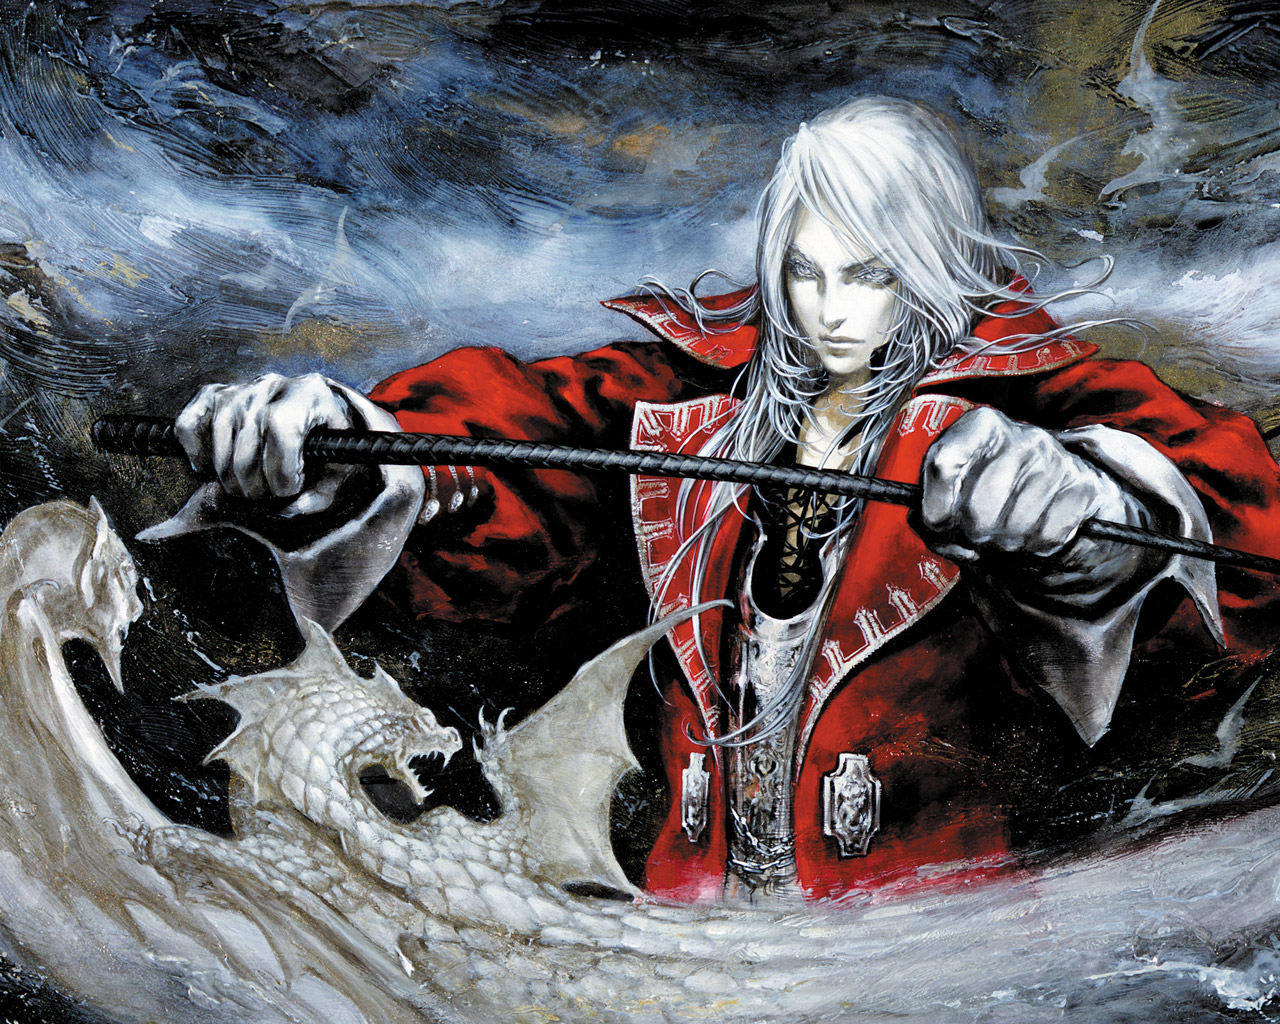 Castlevania: Curse of Darkness Wallpaper in 1280x1024